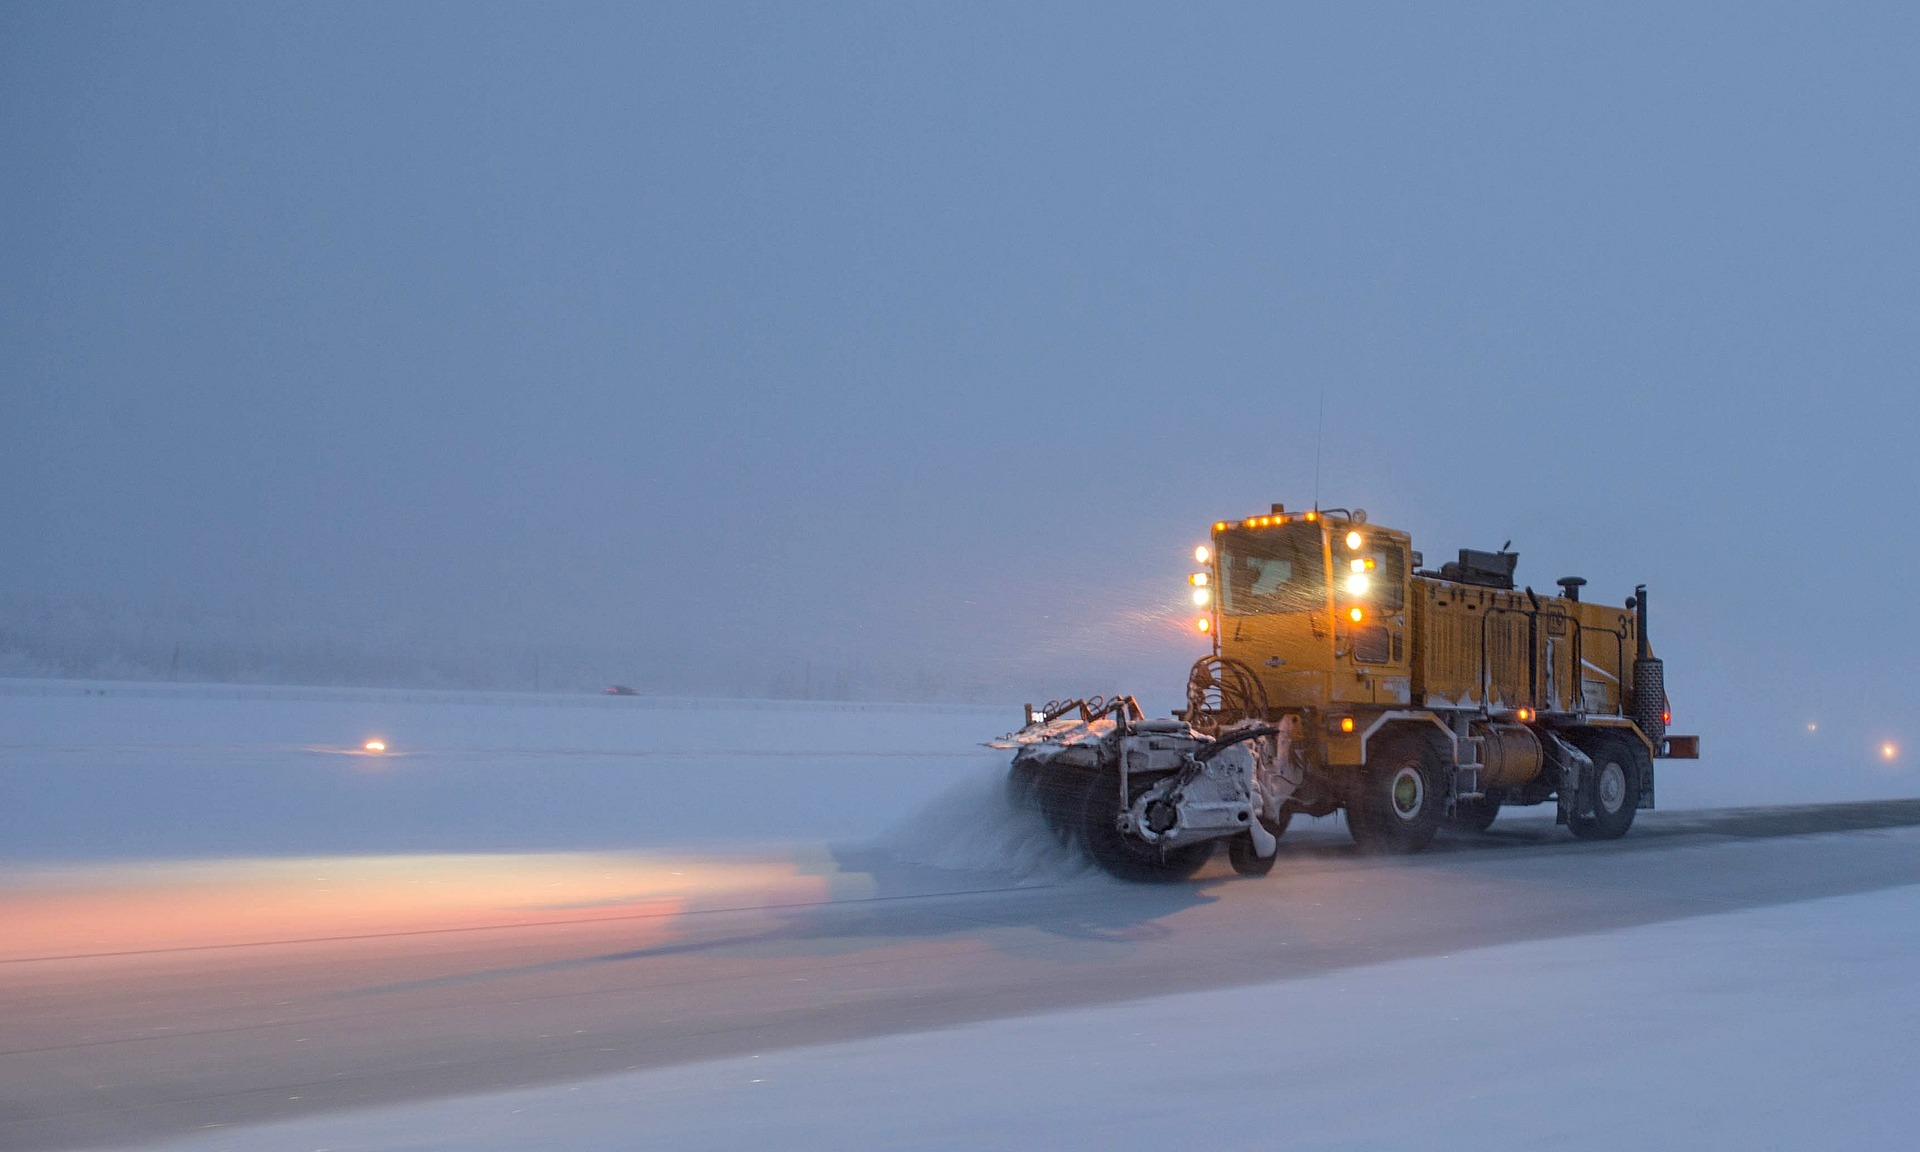 Snowplows are out to clear the roads during a snow storm.